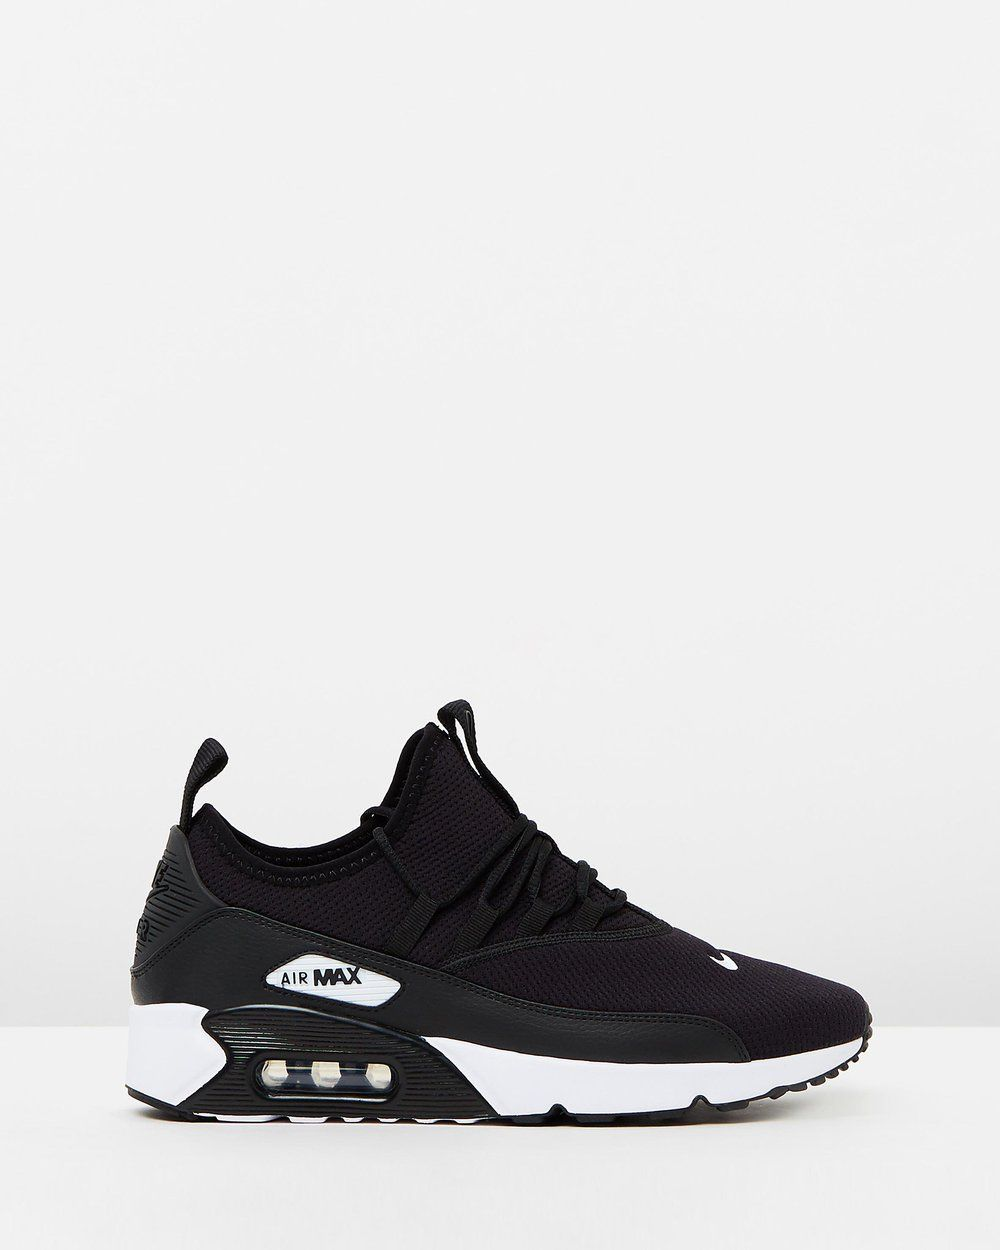 buy online 610f1 36bc8 Buy Nike Air Max 90 EZ - Womens by Nike online at THE ICONIC. Free and fast  delivery to Australia and New Zealand.